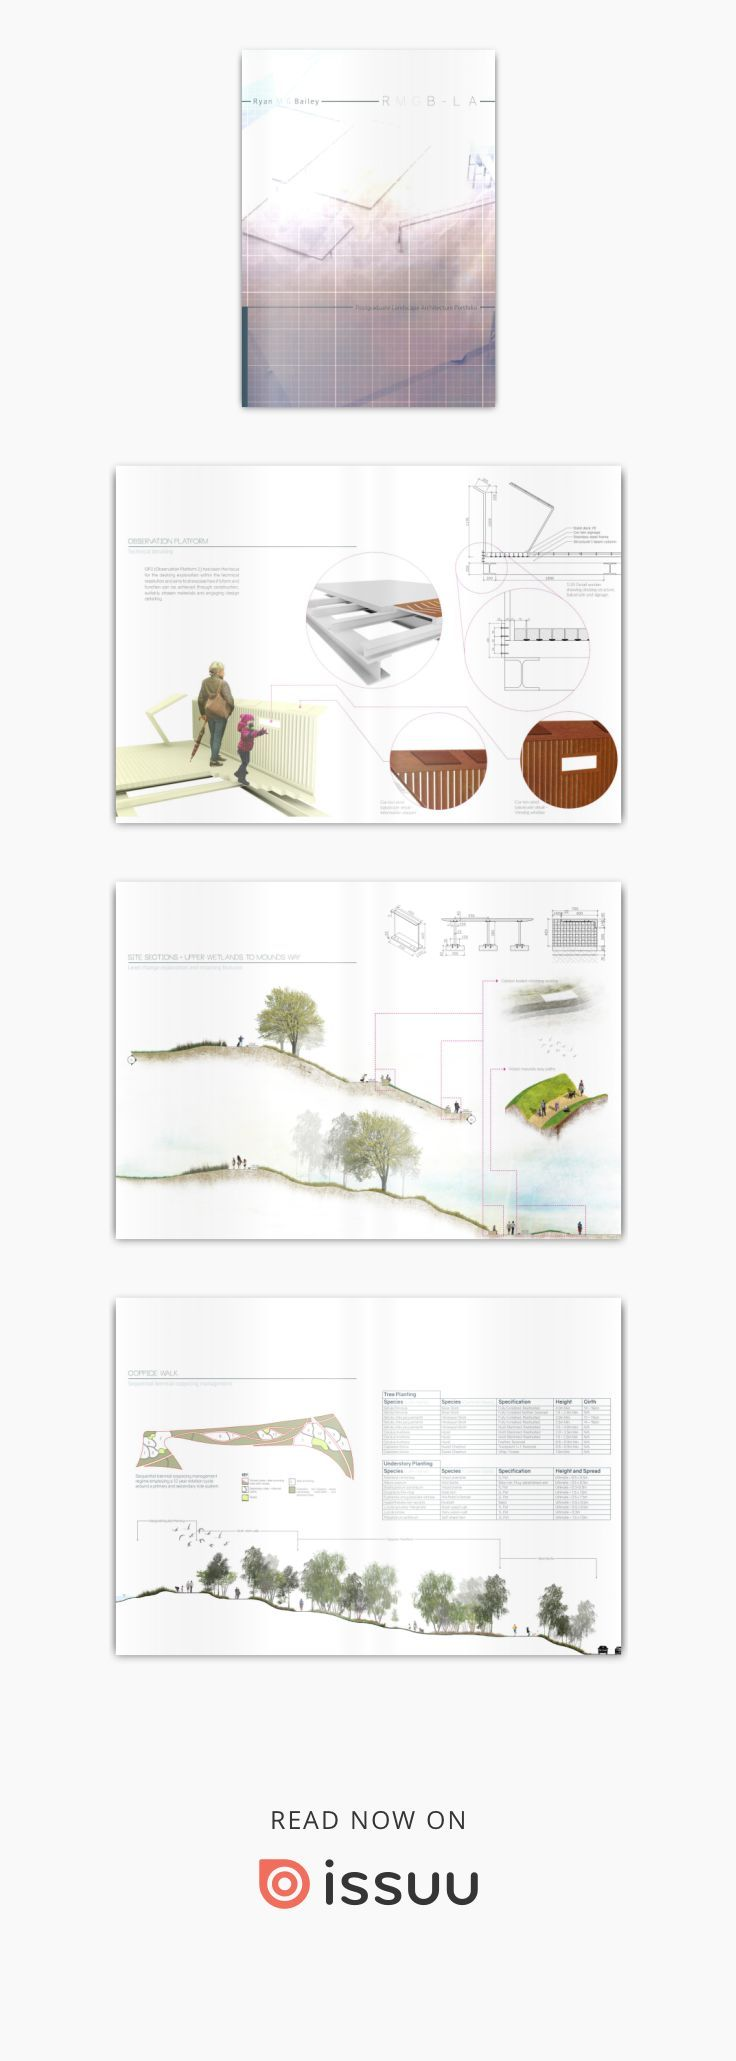 RMGB - postgraduate landscape architecture portfolio vol 2  Portfolio of completed works during my MA degree, year-out experience and BA degree